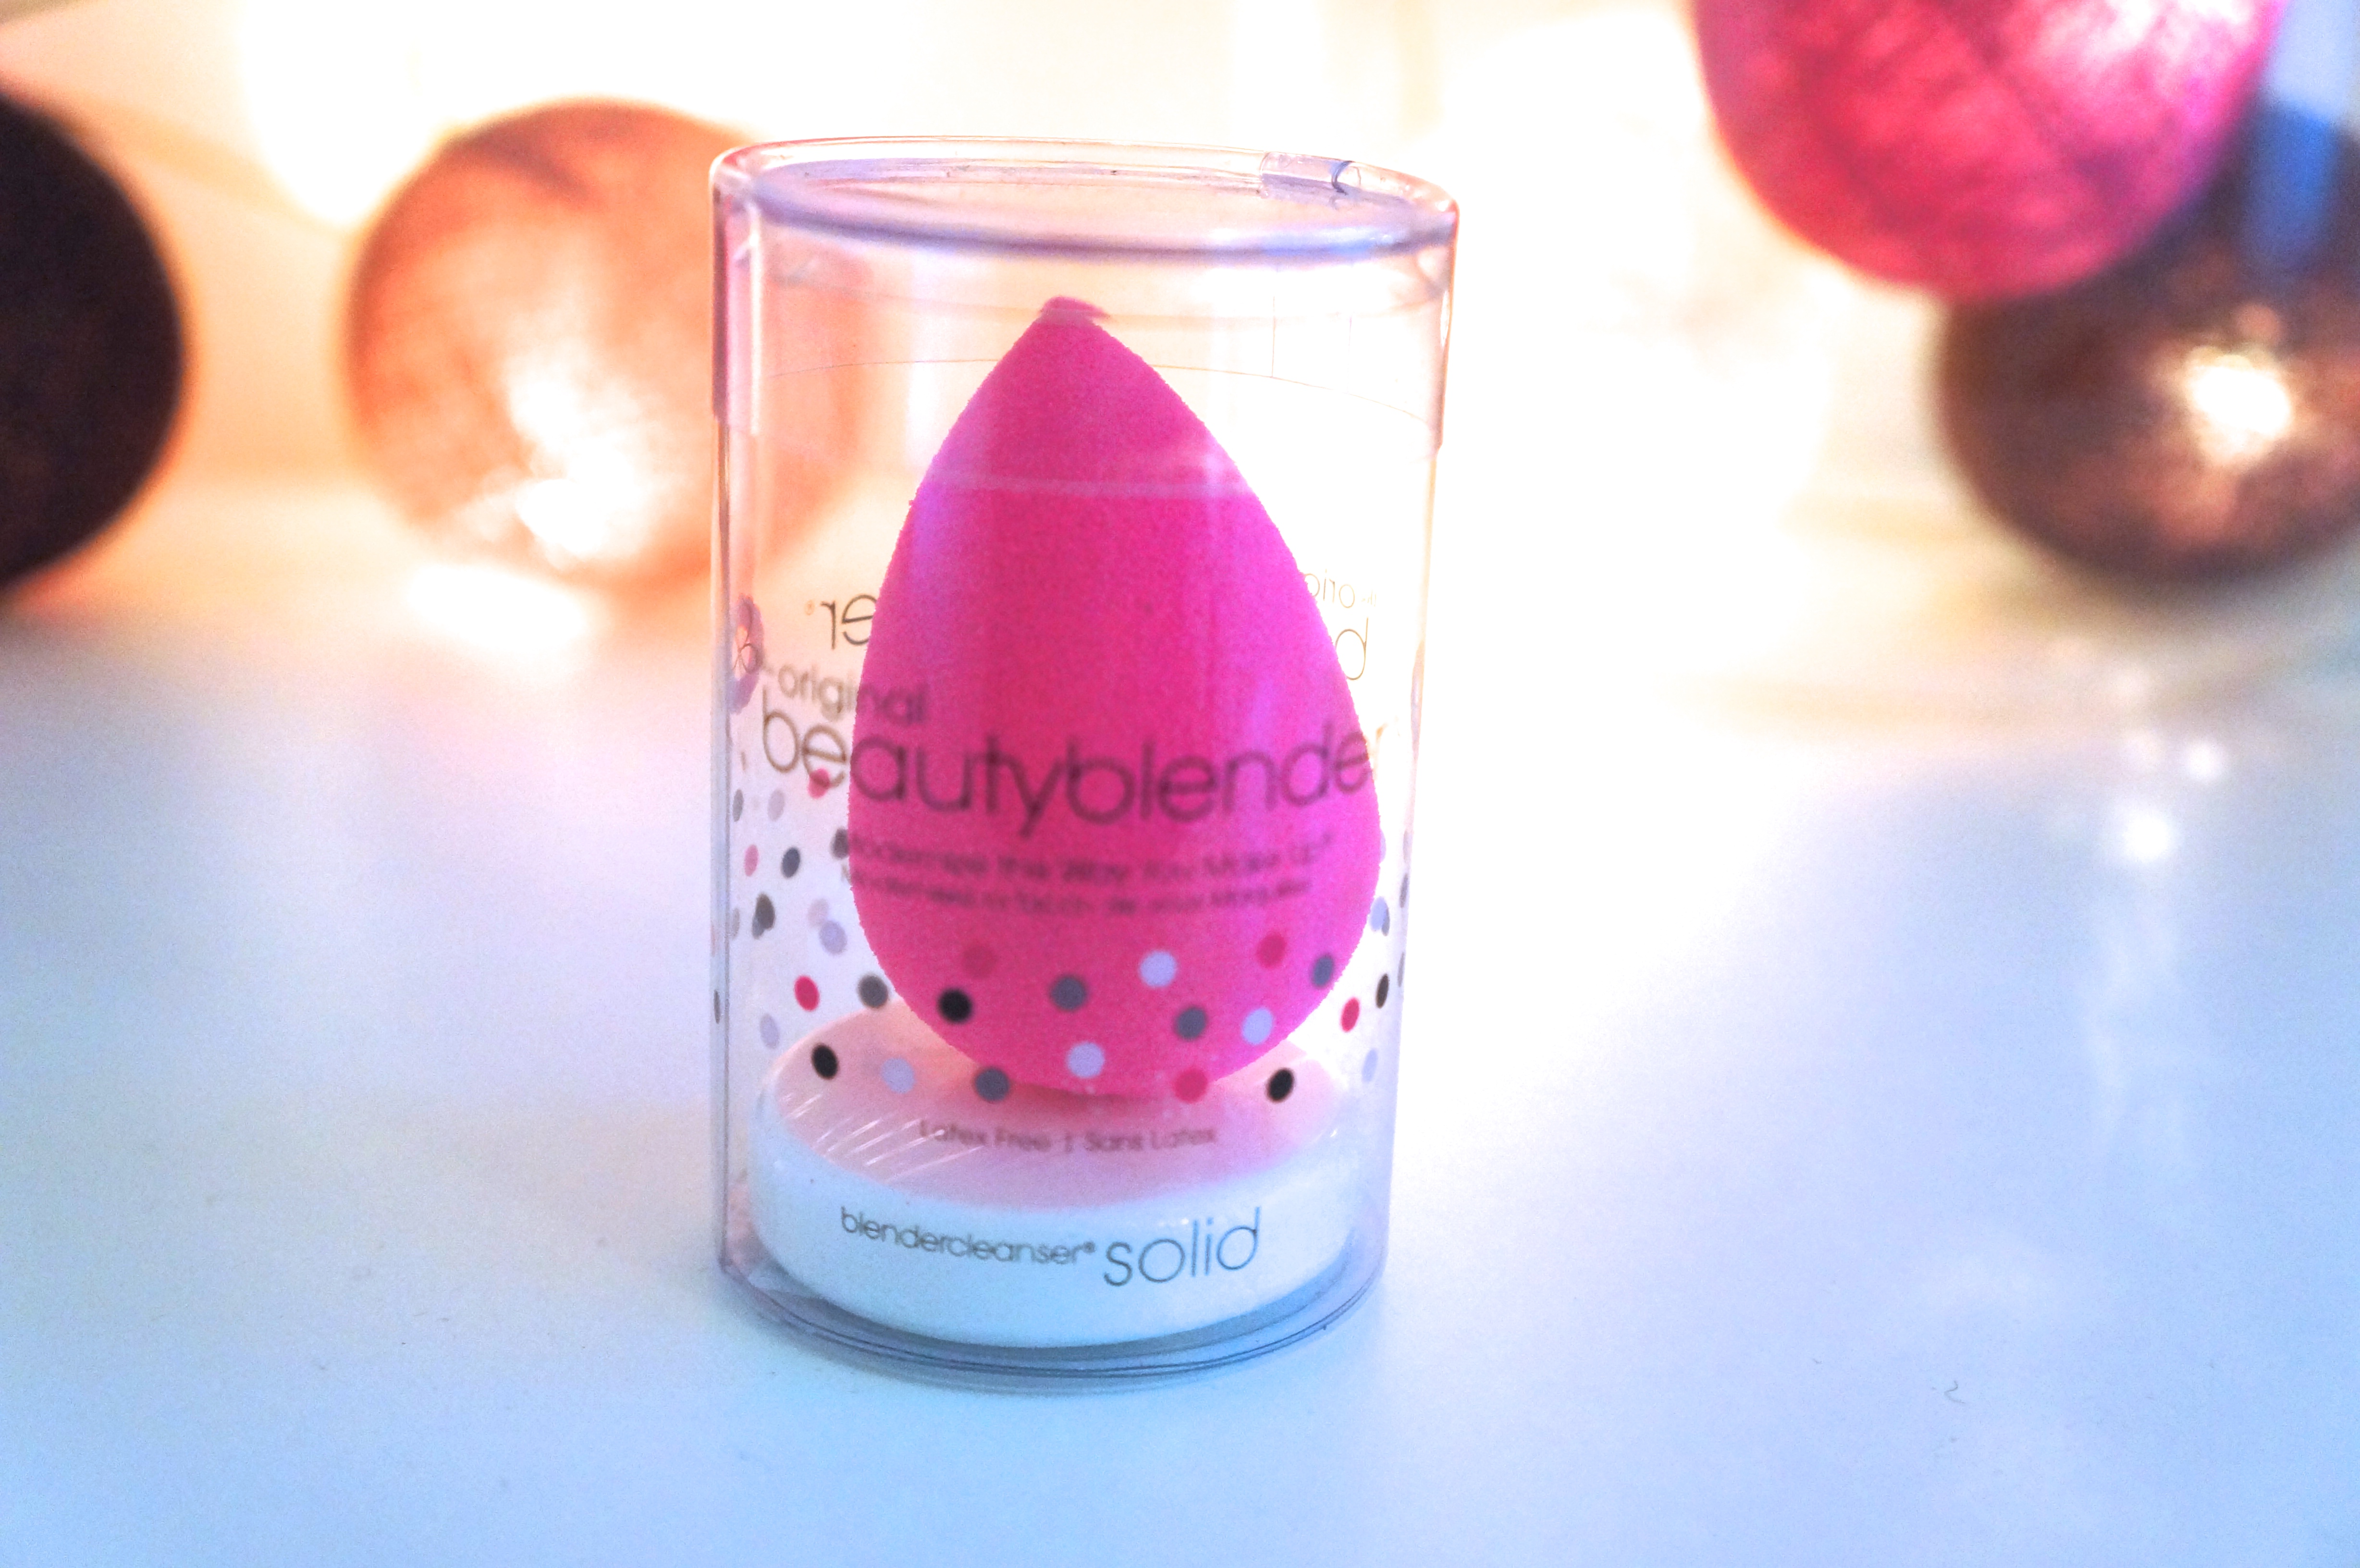 Beauty Blender / Pic by 1FDLE